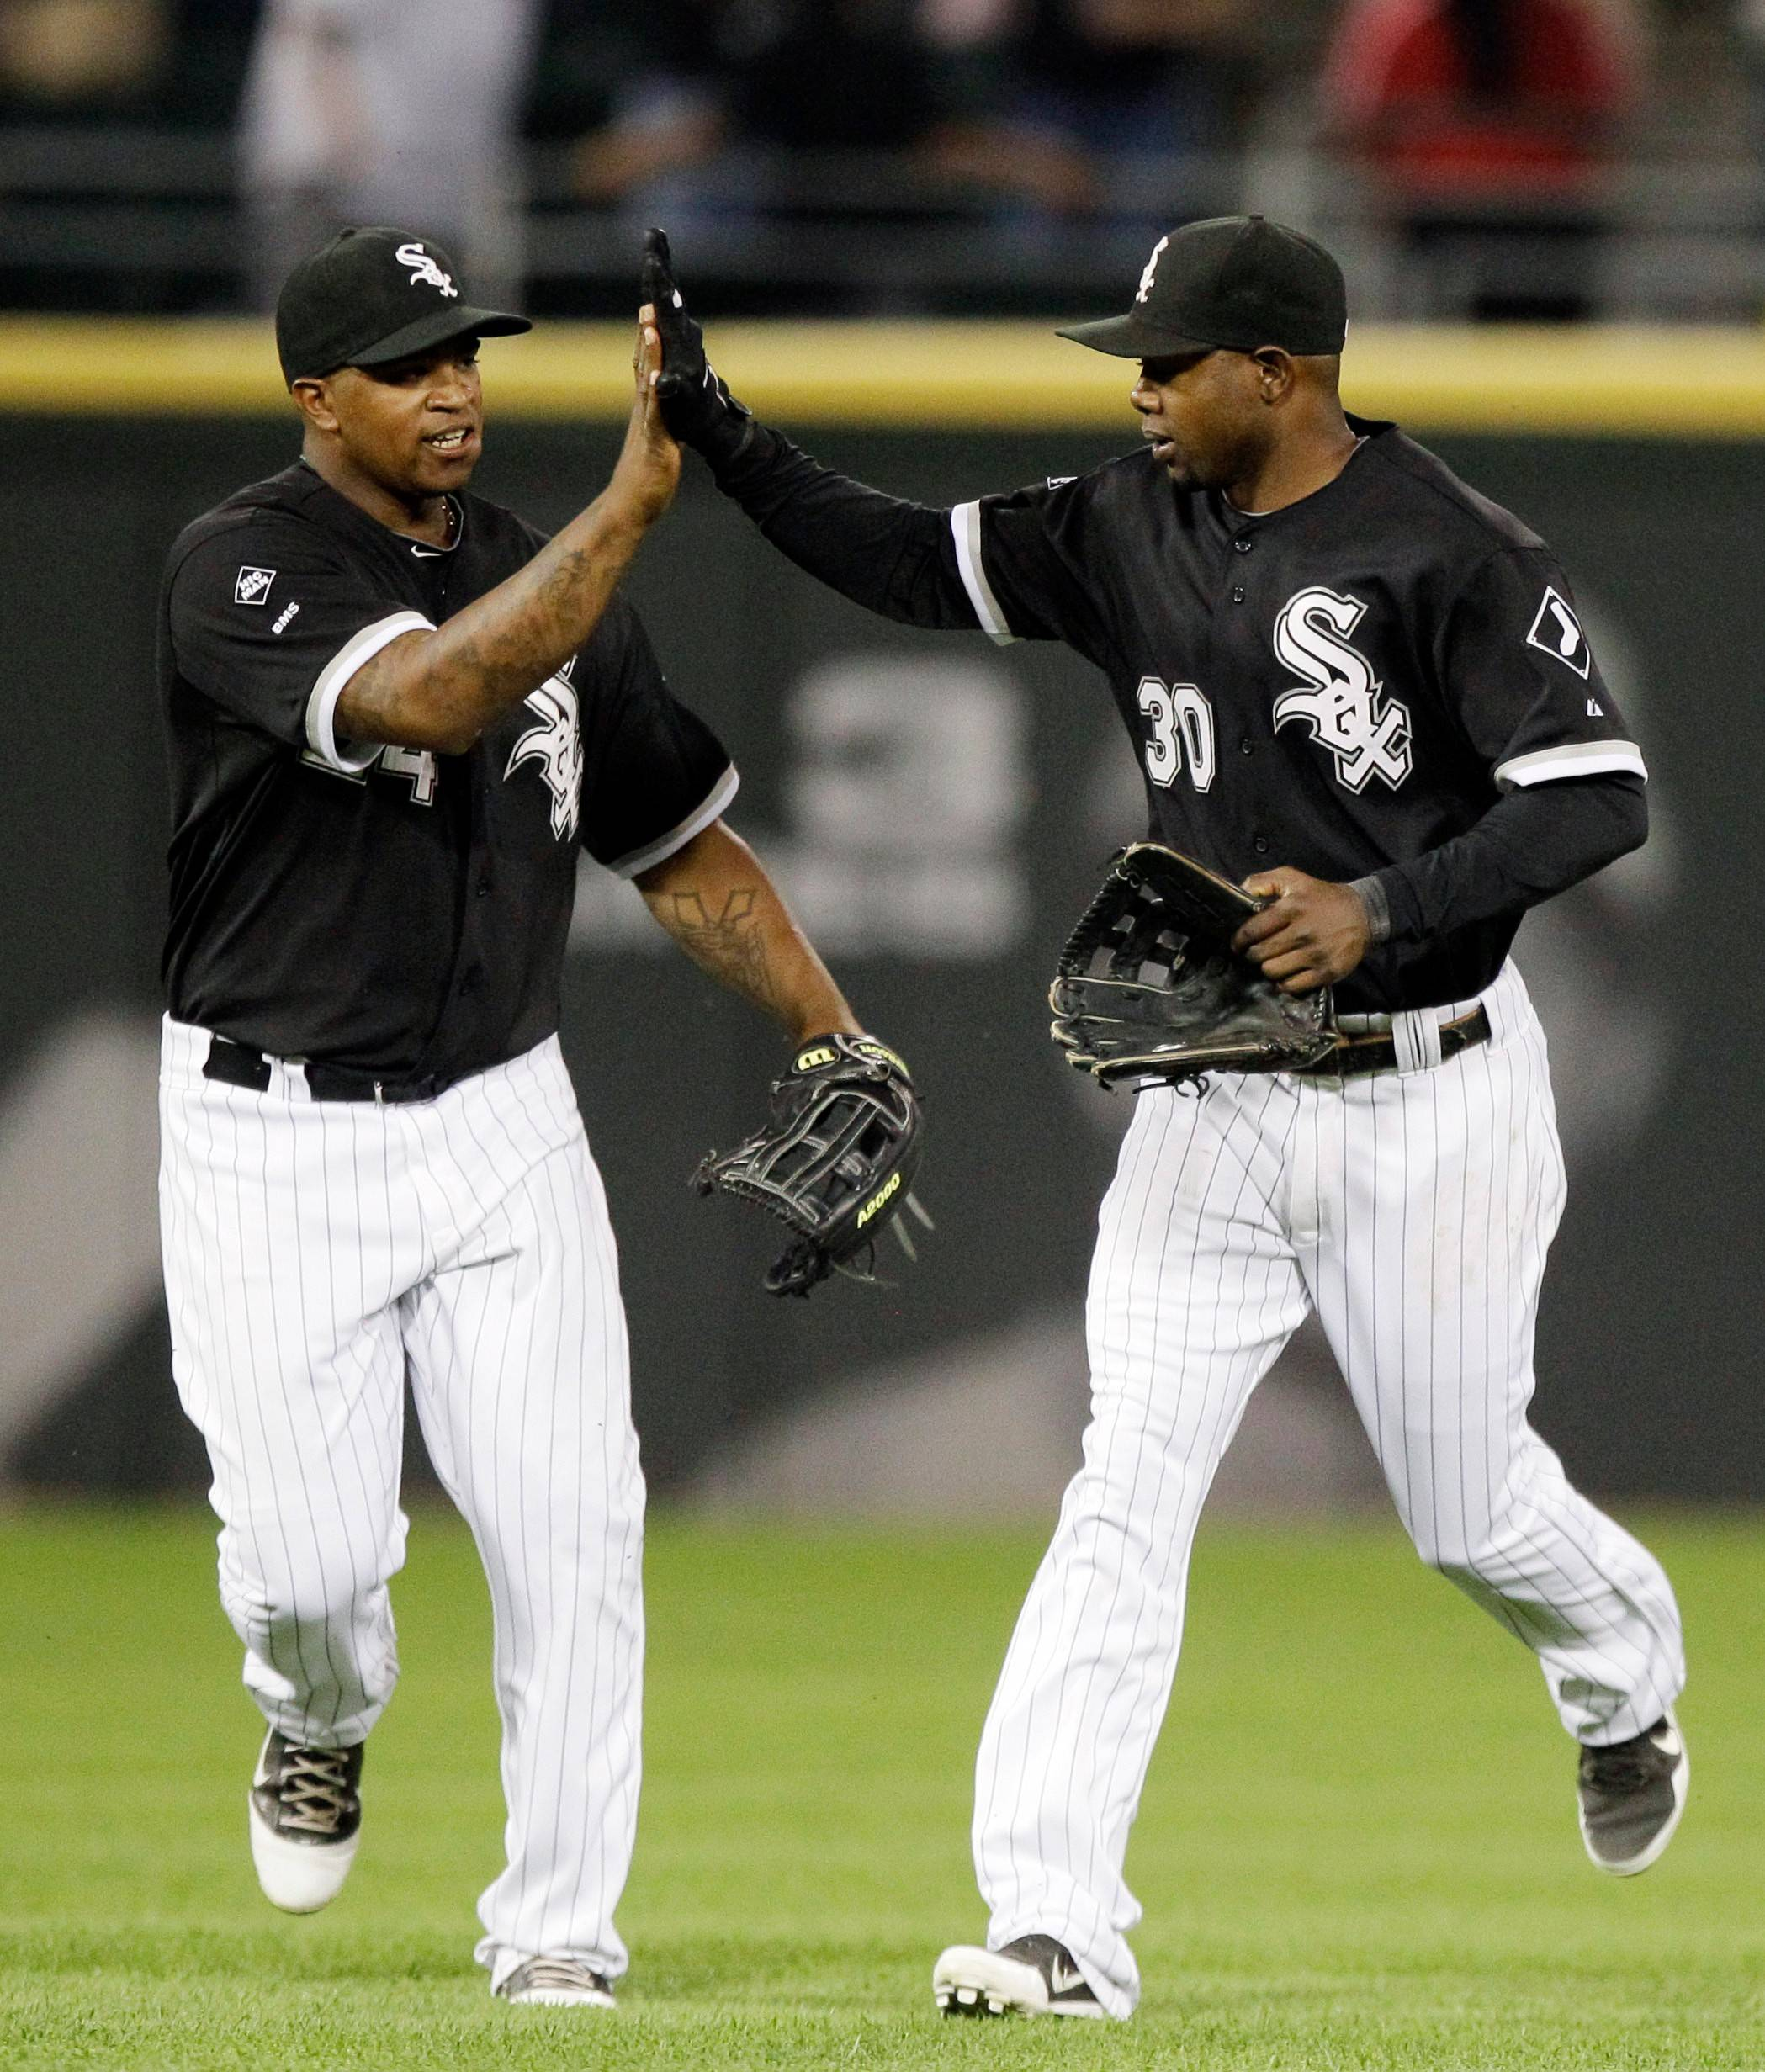 Alejandro De Aza, right, and Dayan Viciedo may platoon in left field for the White Sox this season.